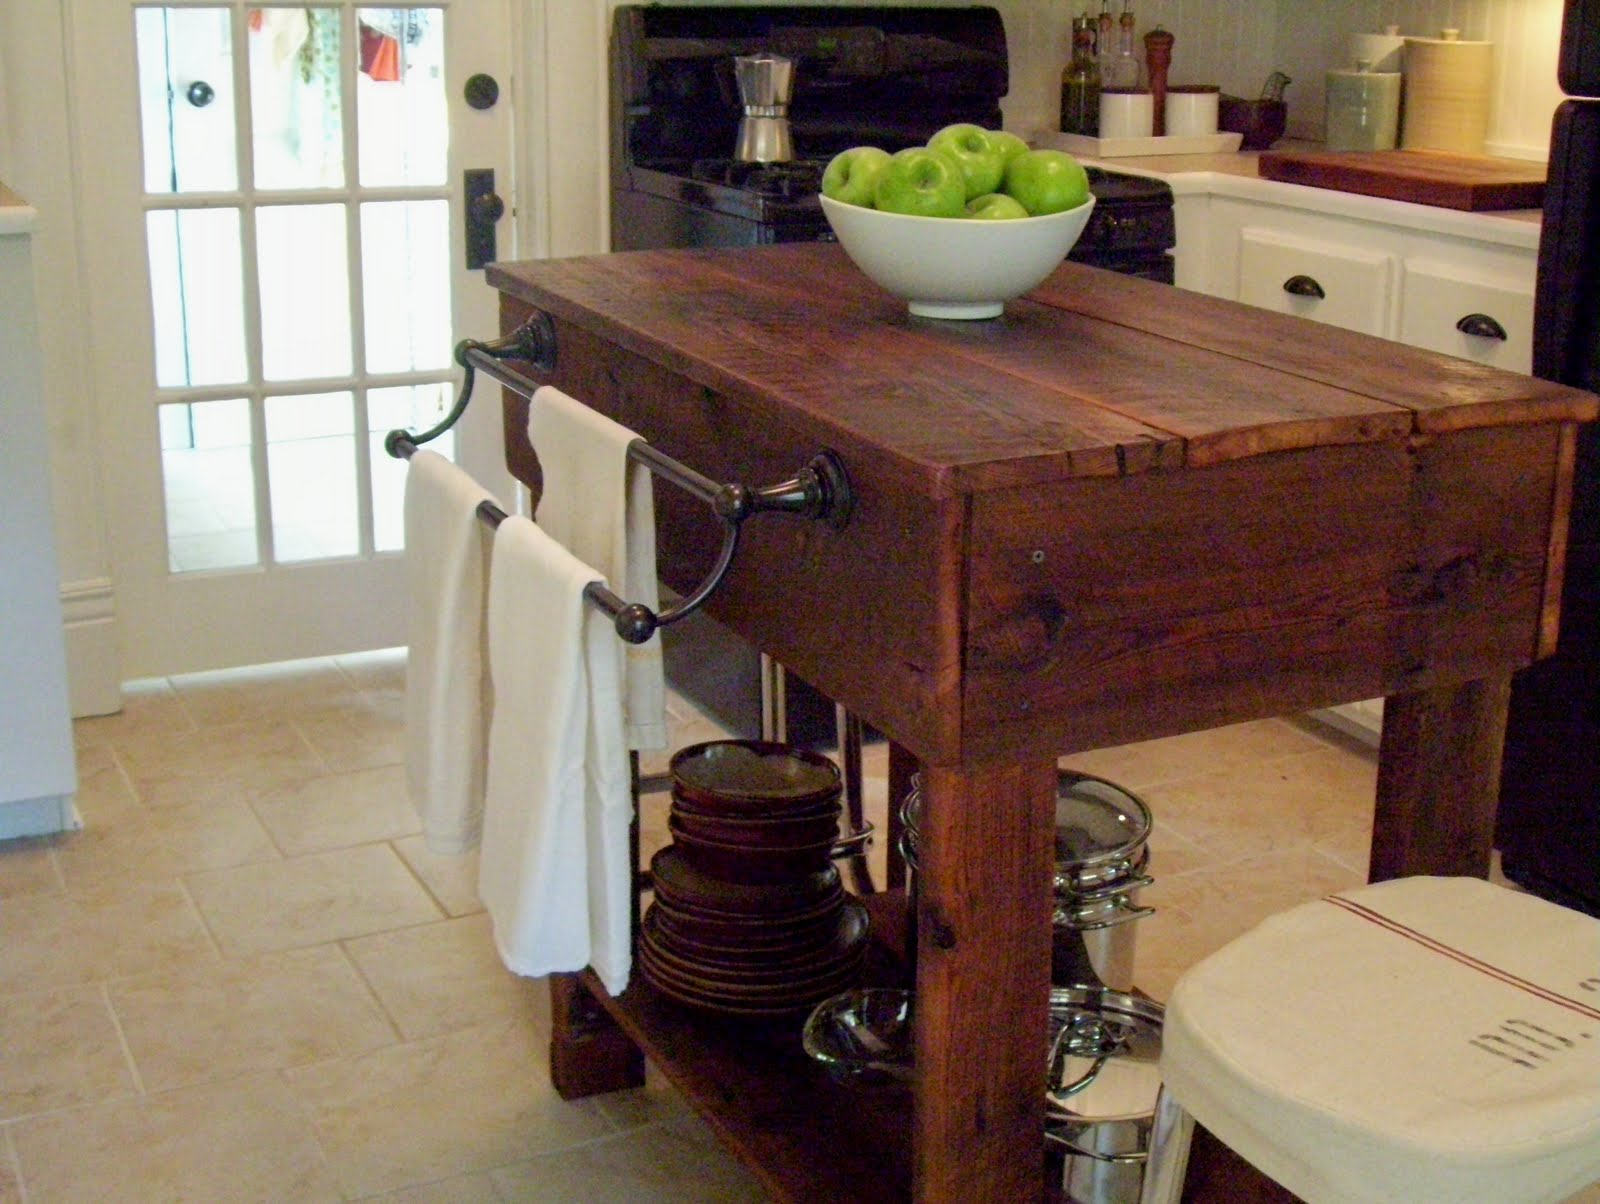 to start building your rustic center table for your kitchen like the